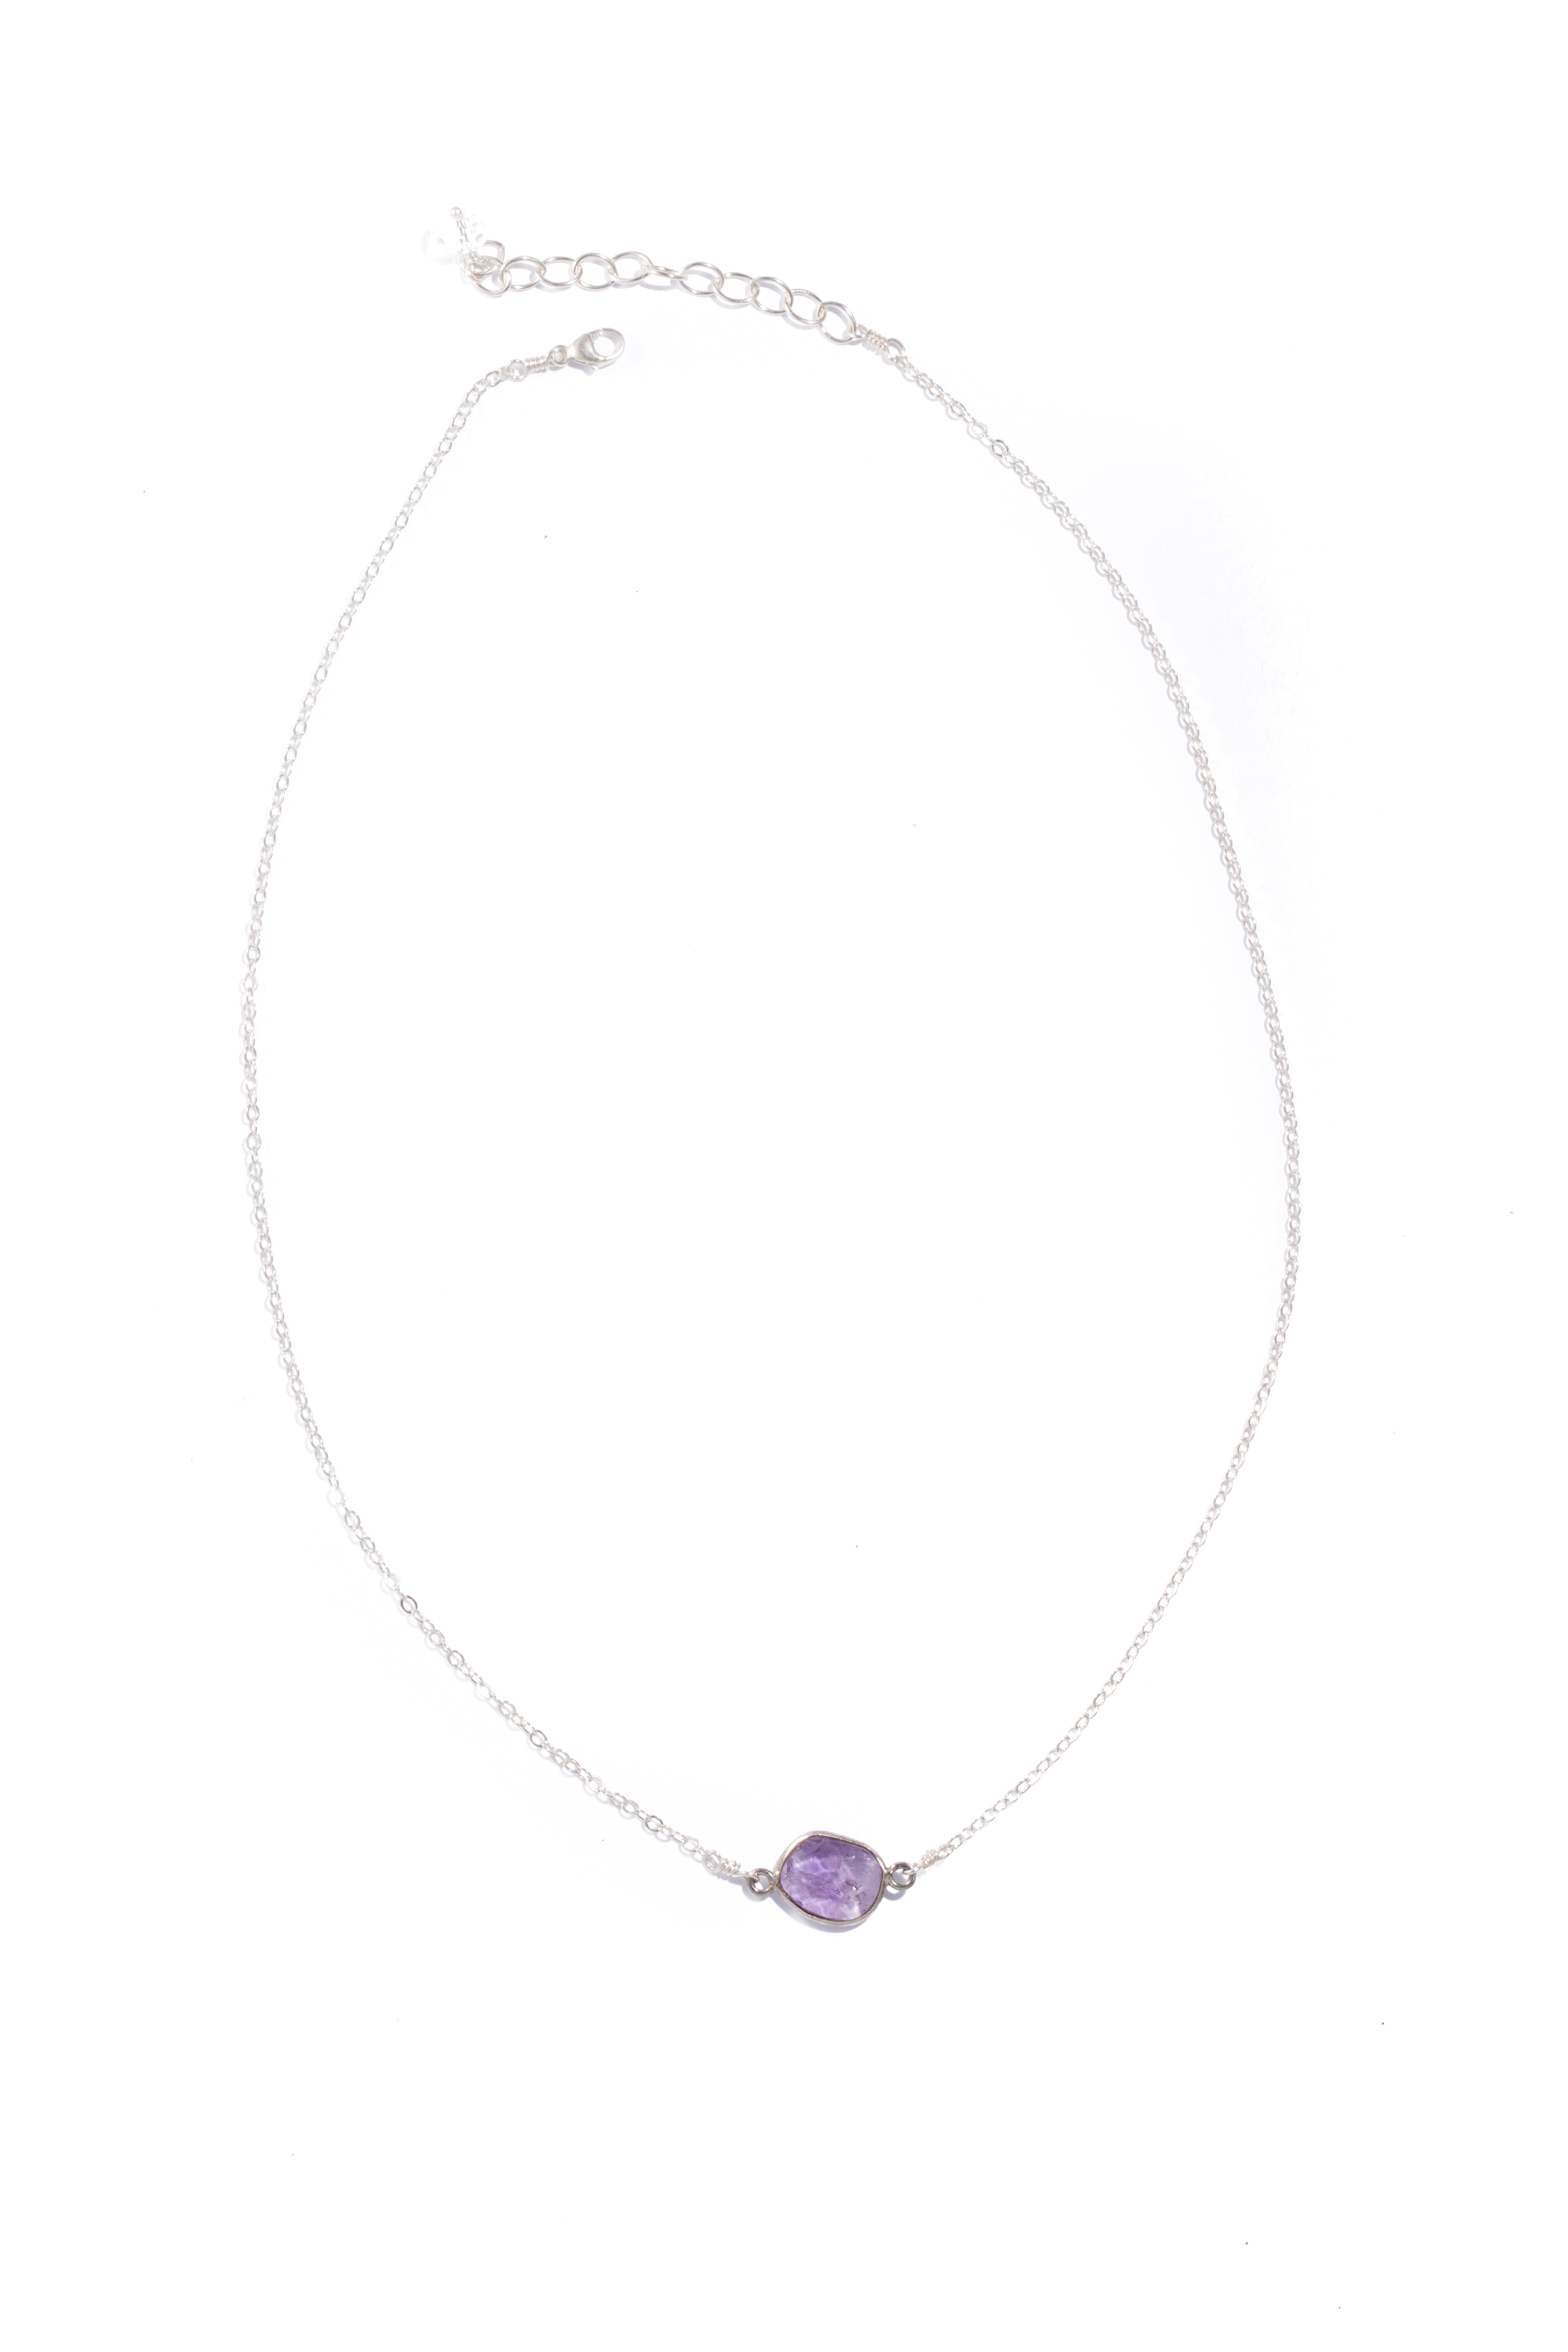 nina halls 'Dublin' Necklace with Amethyst in Silver Plated Over Brass